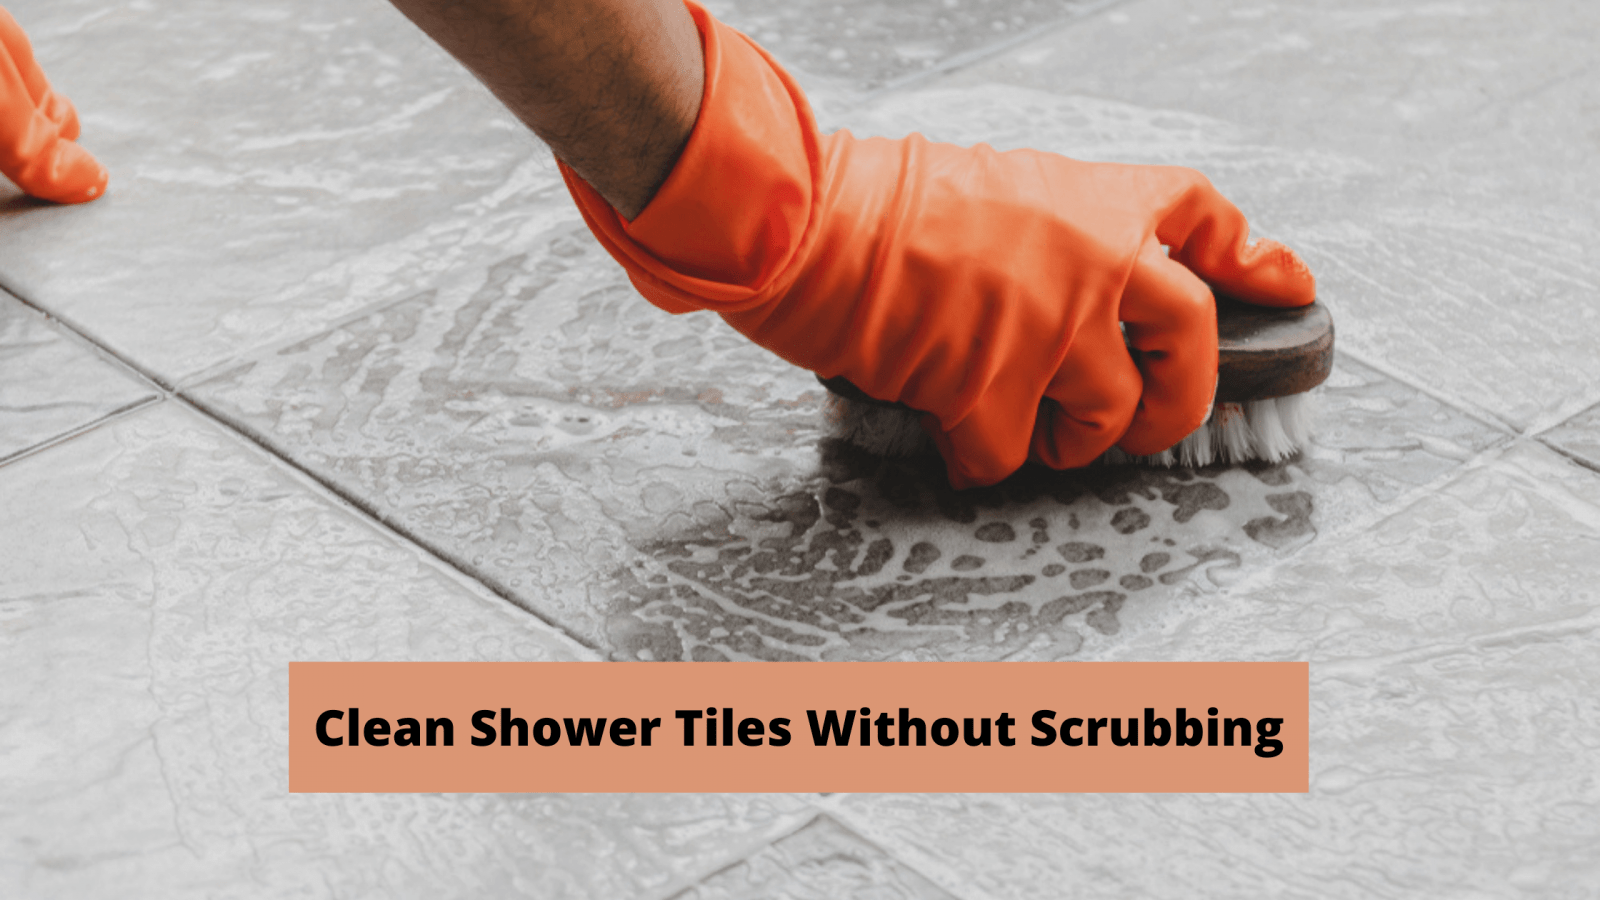 Clean Shower Tiles Without Scrubbing